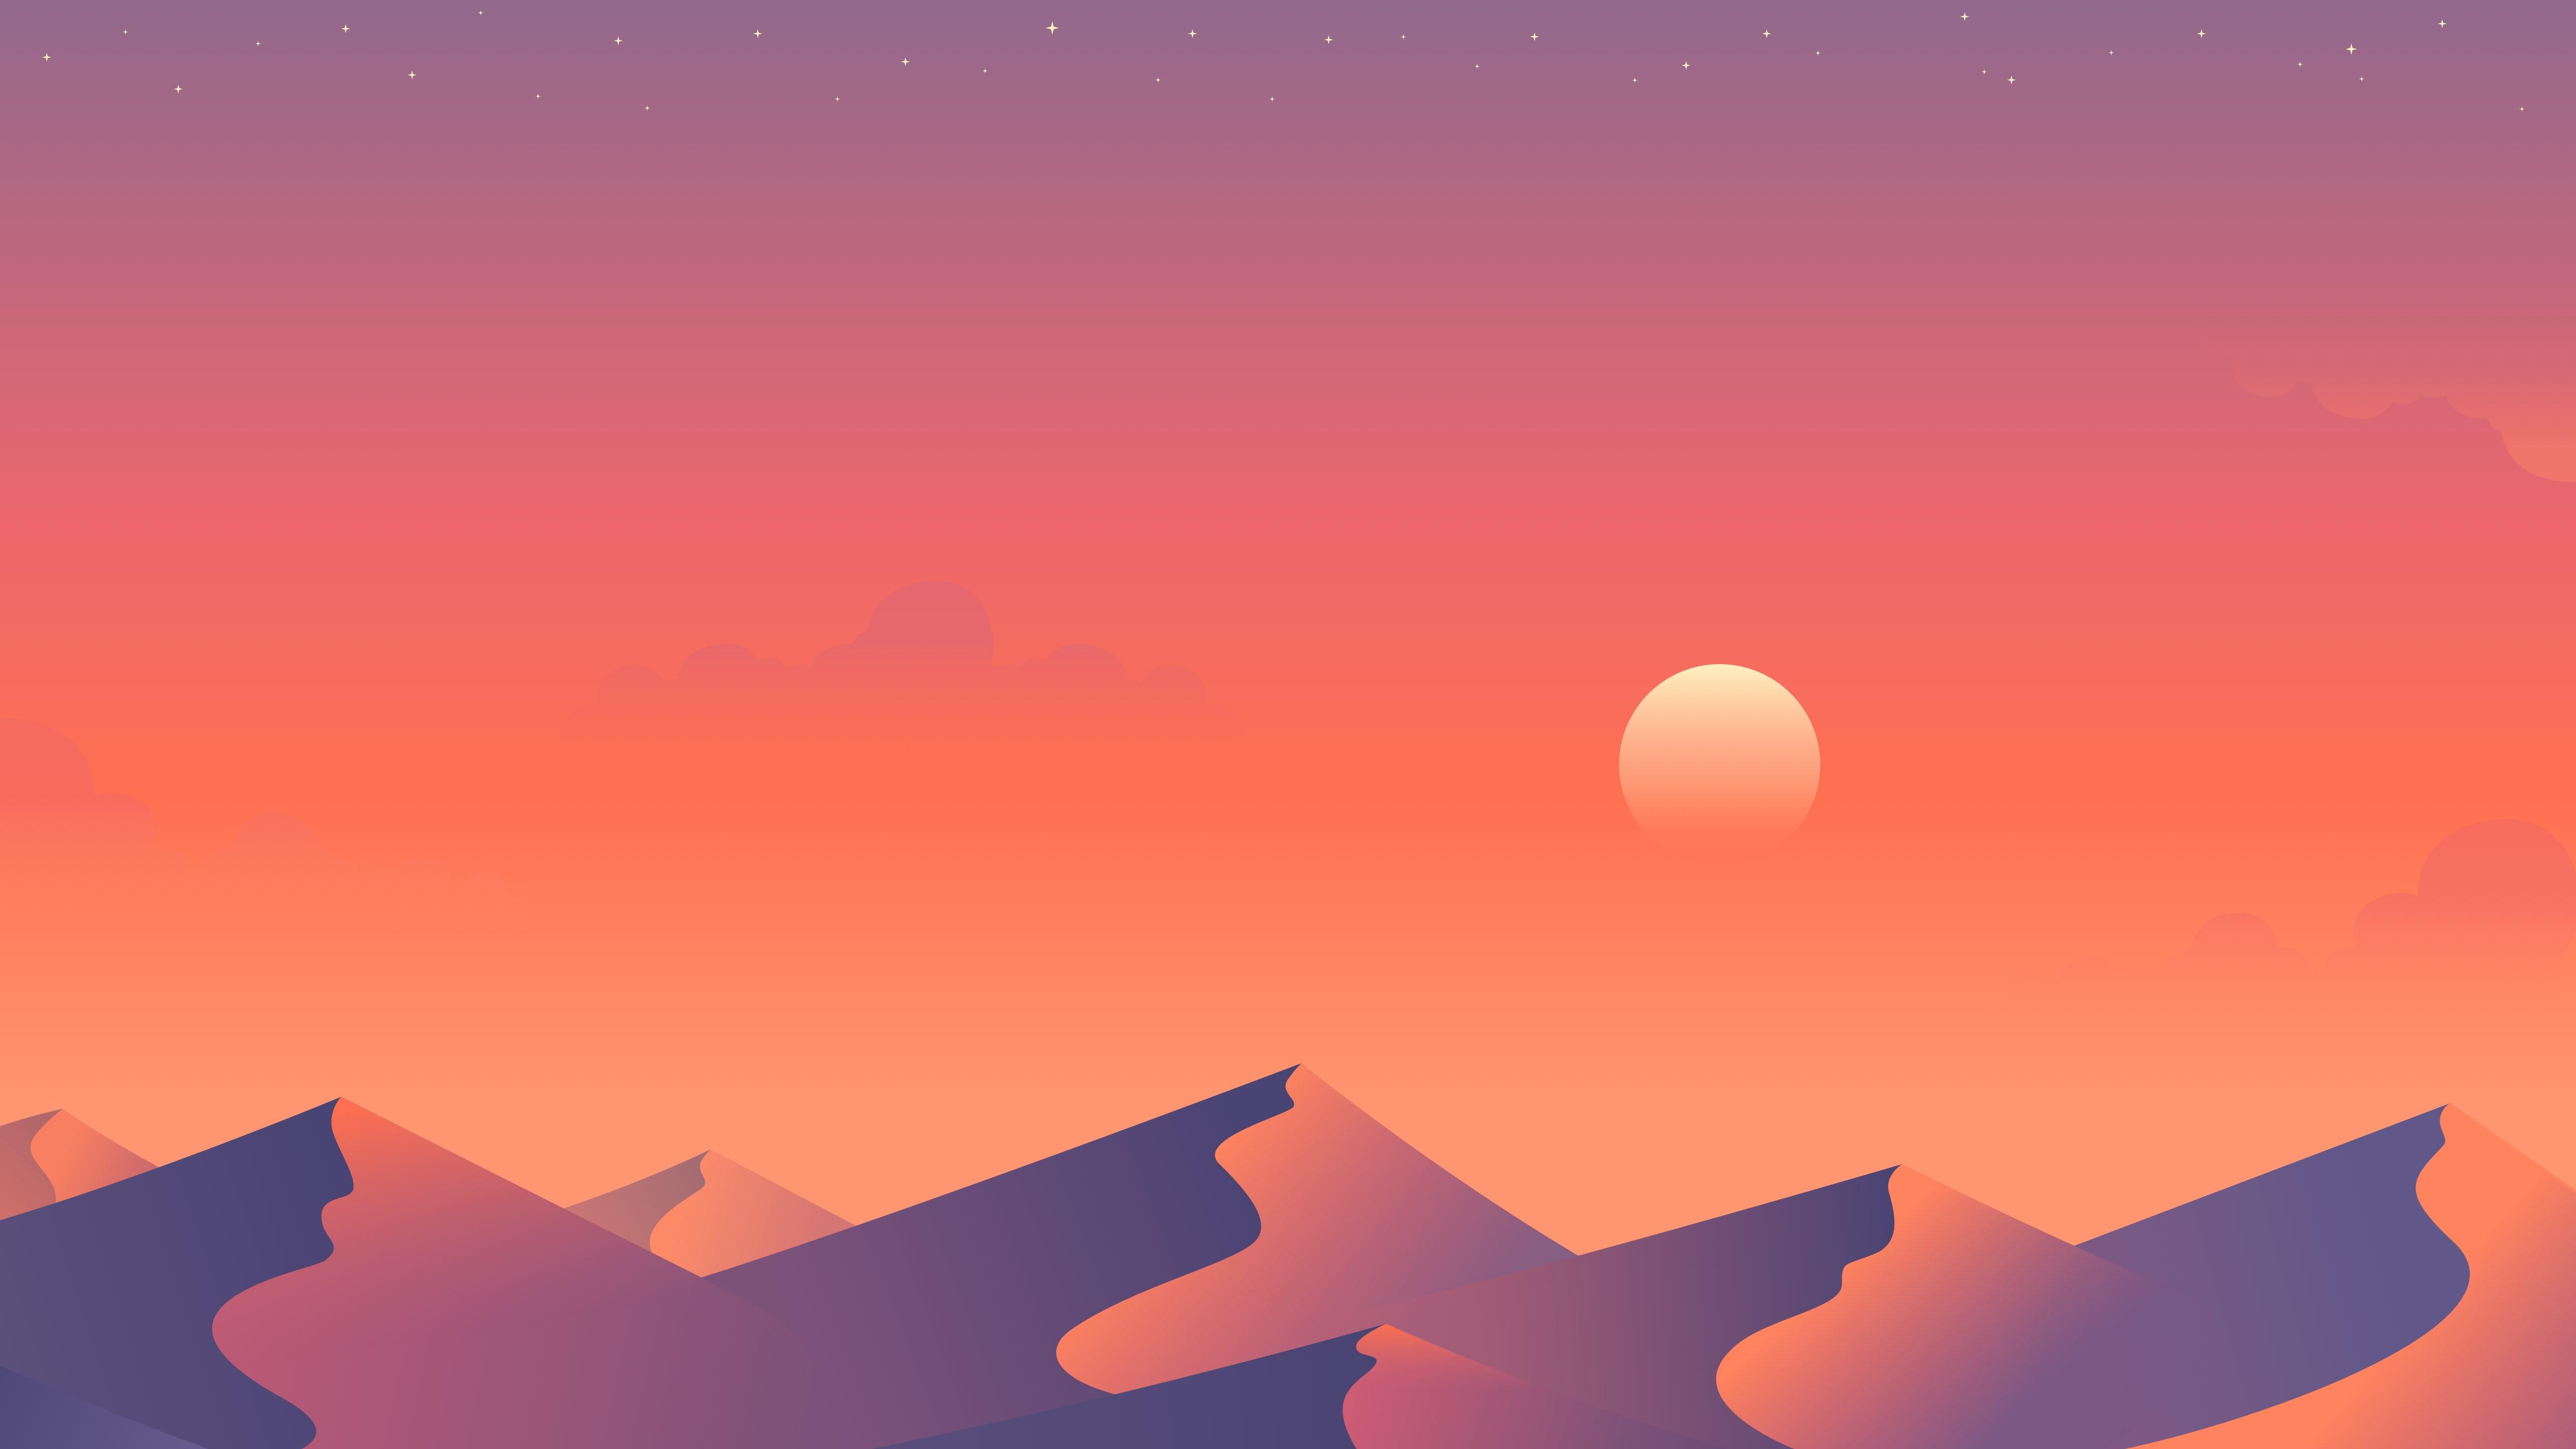 Download wallpaper: Illustration: Desert nights 2 5120x2880